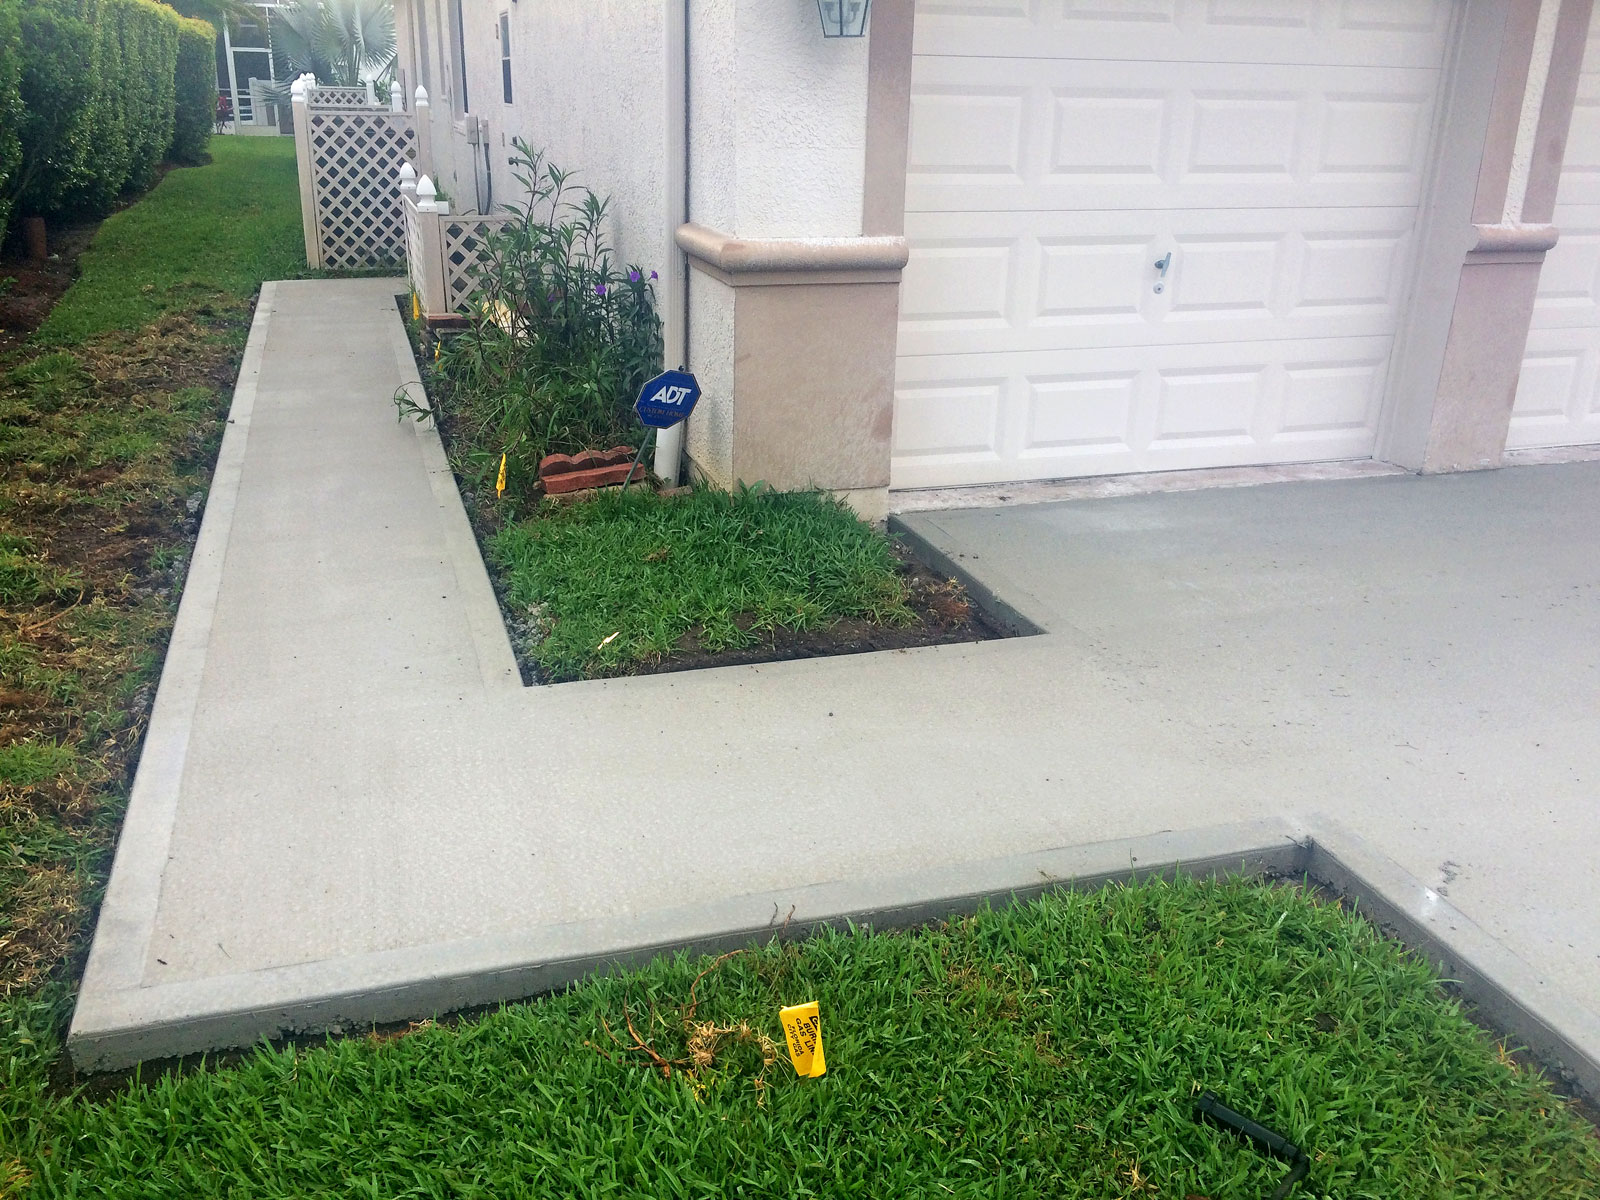 All Florida Concrete Pumping, Inc. provides residential concrete pumping services in Cocoa, Florida for concrete contractors, home owners, general contractors and home builders.